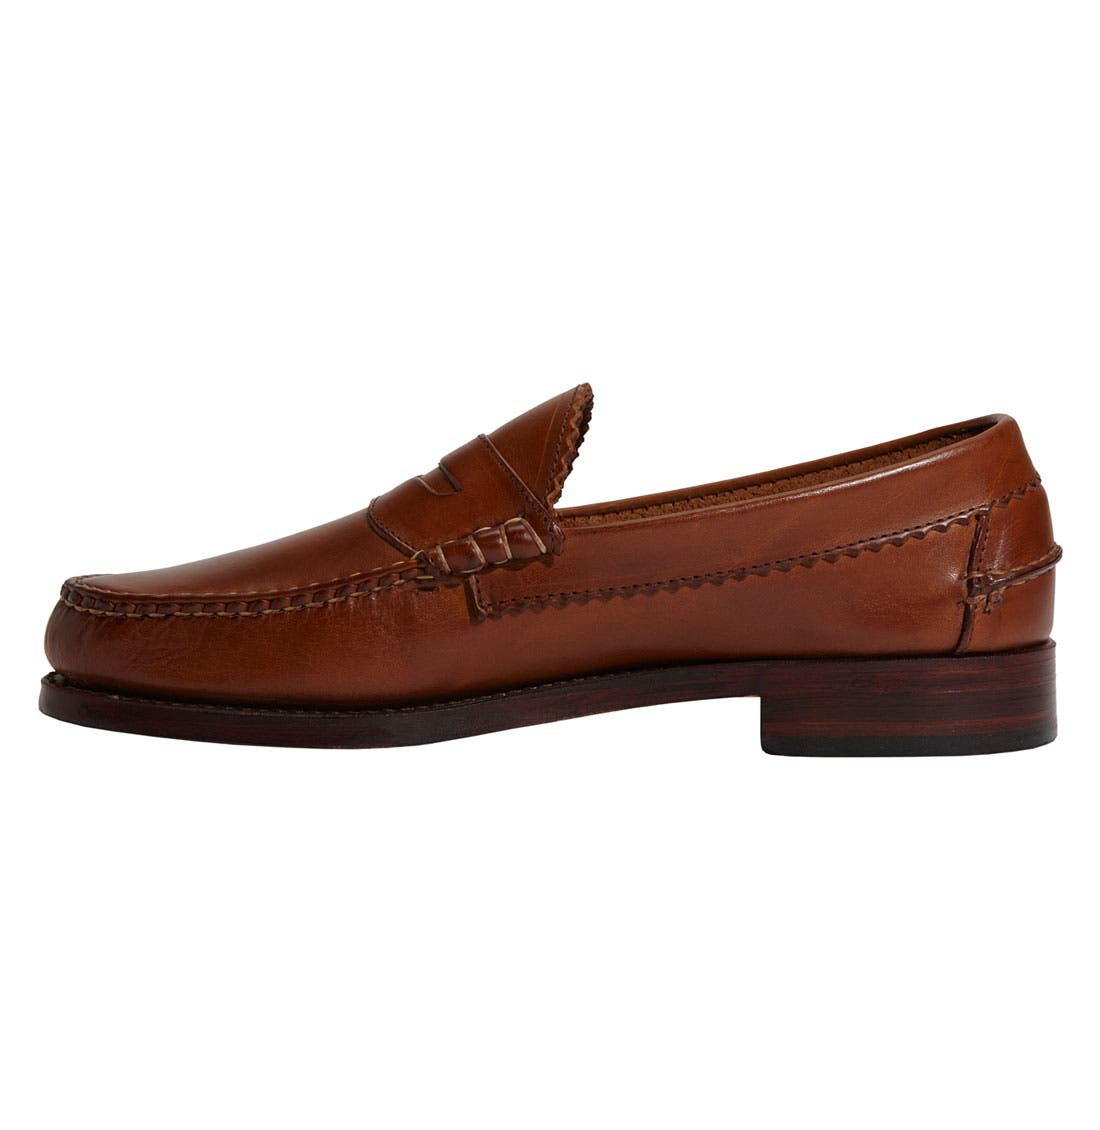 Alternate Image 2  - Allen Edmonds 'Kenwood' Penny Loafer (Men)